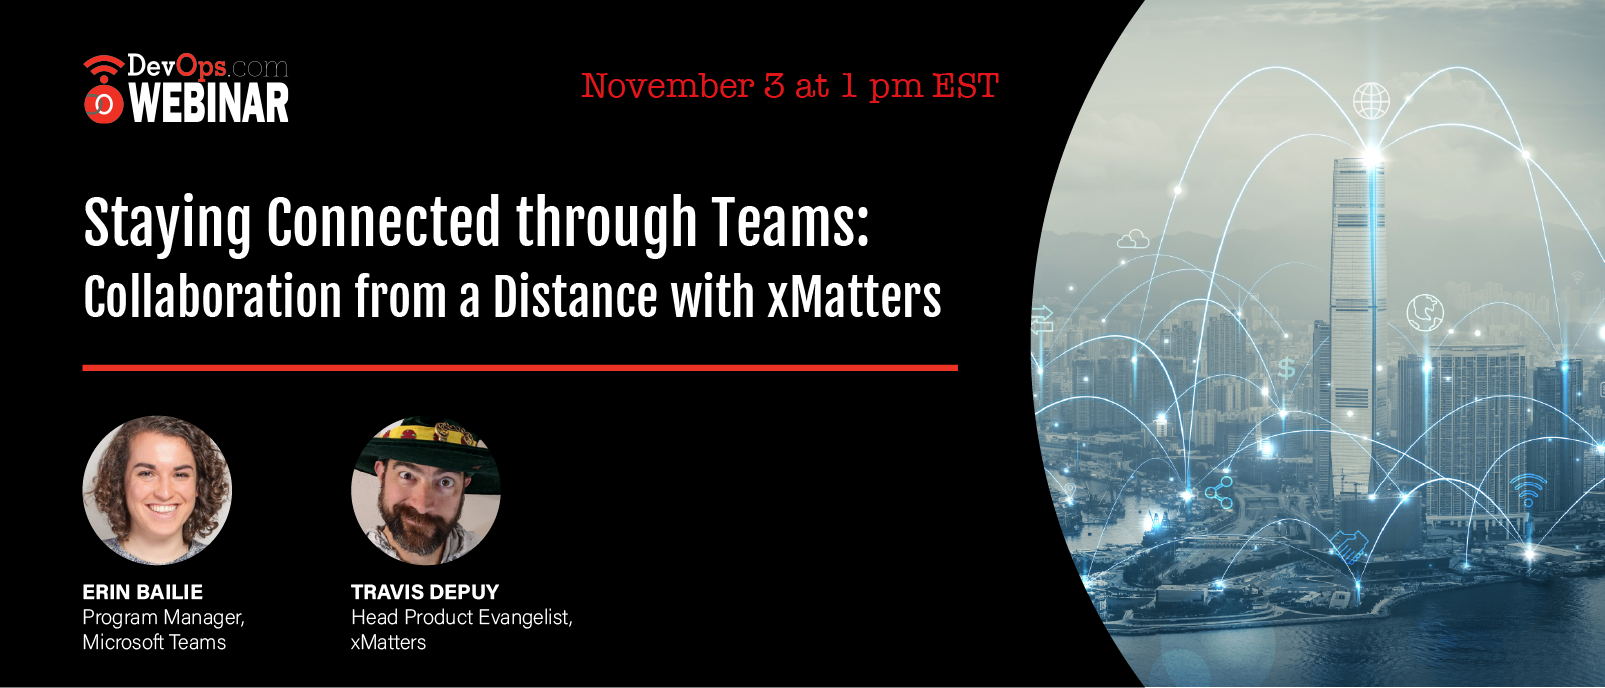 Staying Connected through Teams: Collaboration from a Distance with xMatters